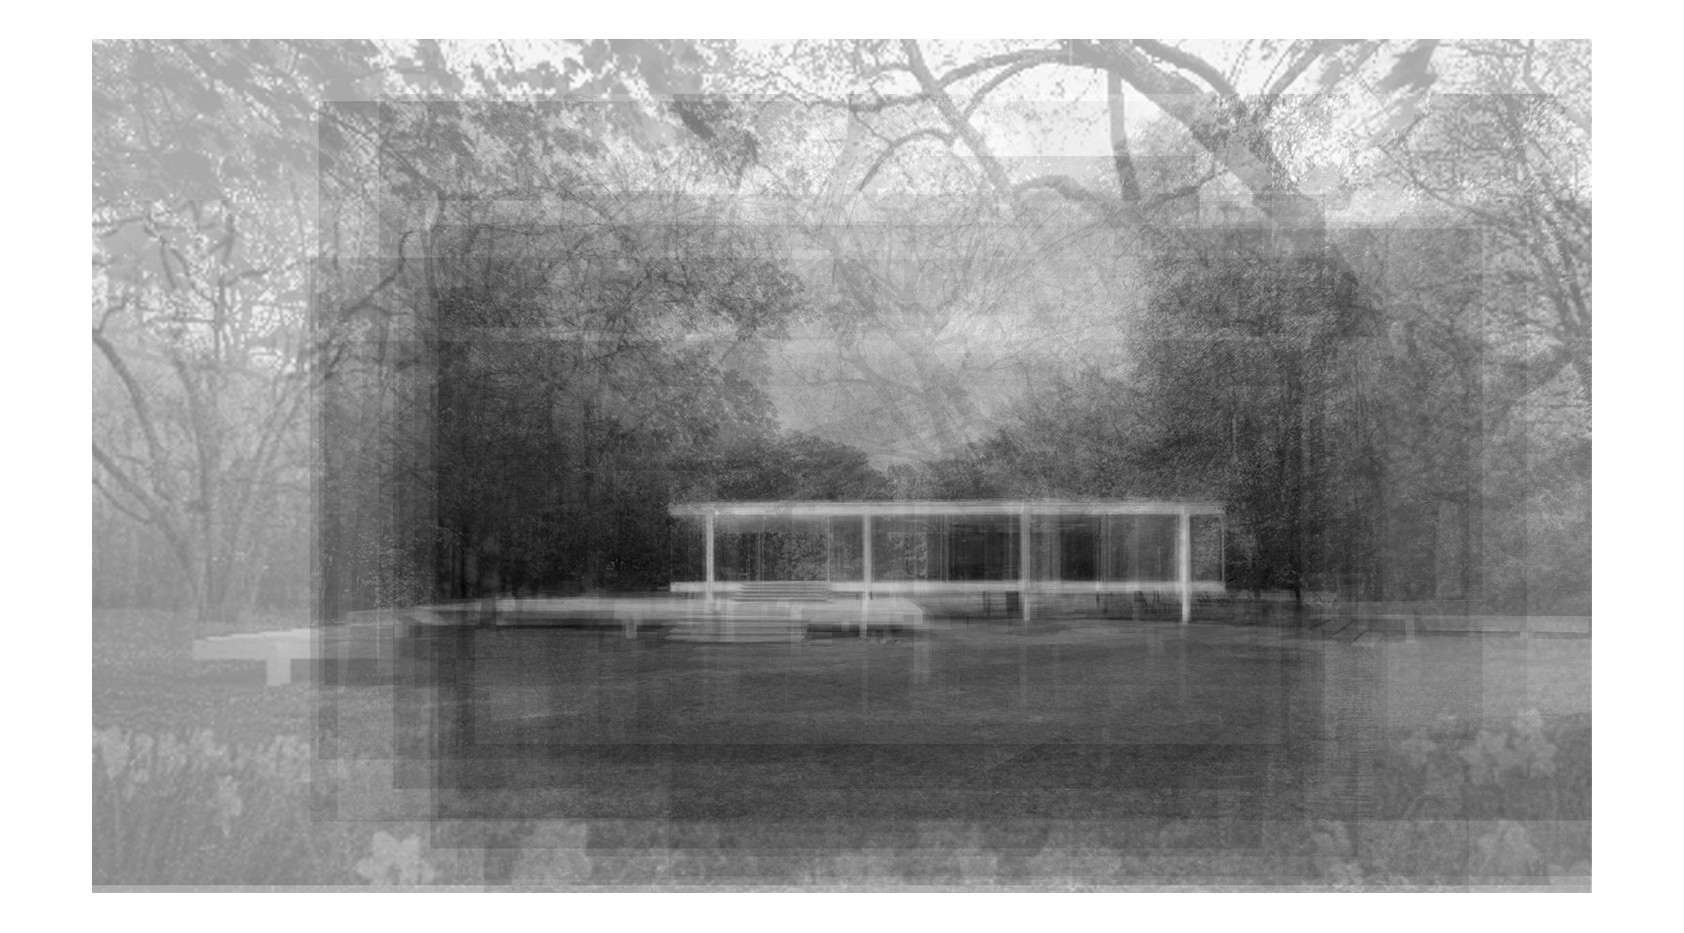 64 Farnsworth Houses